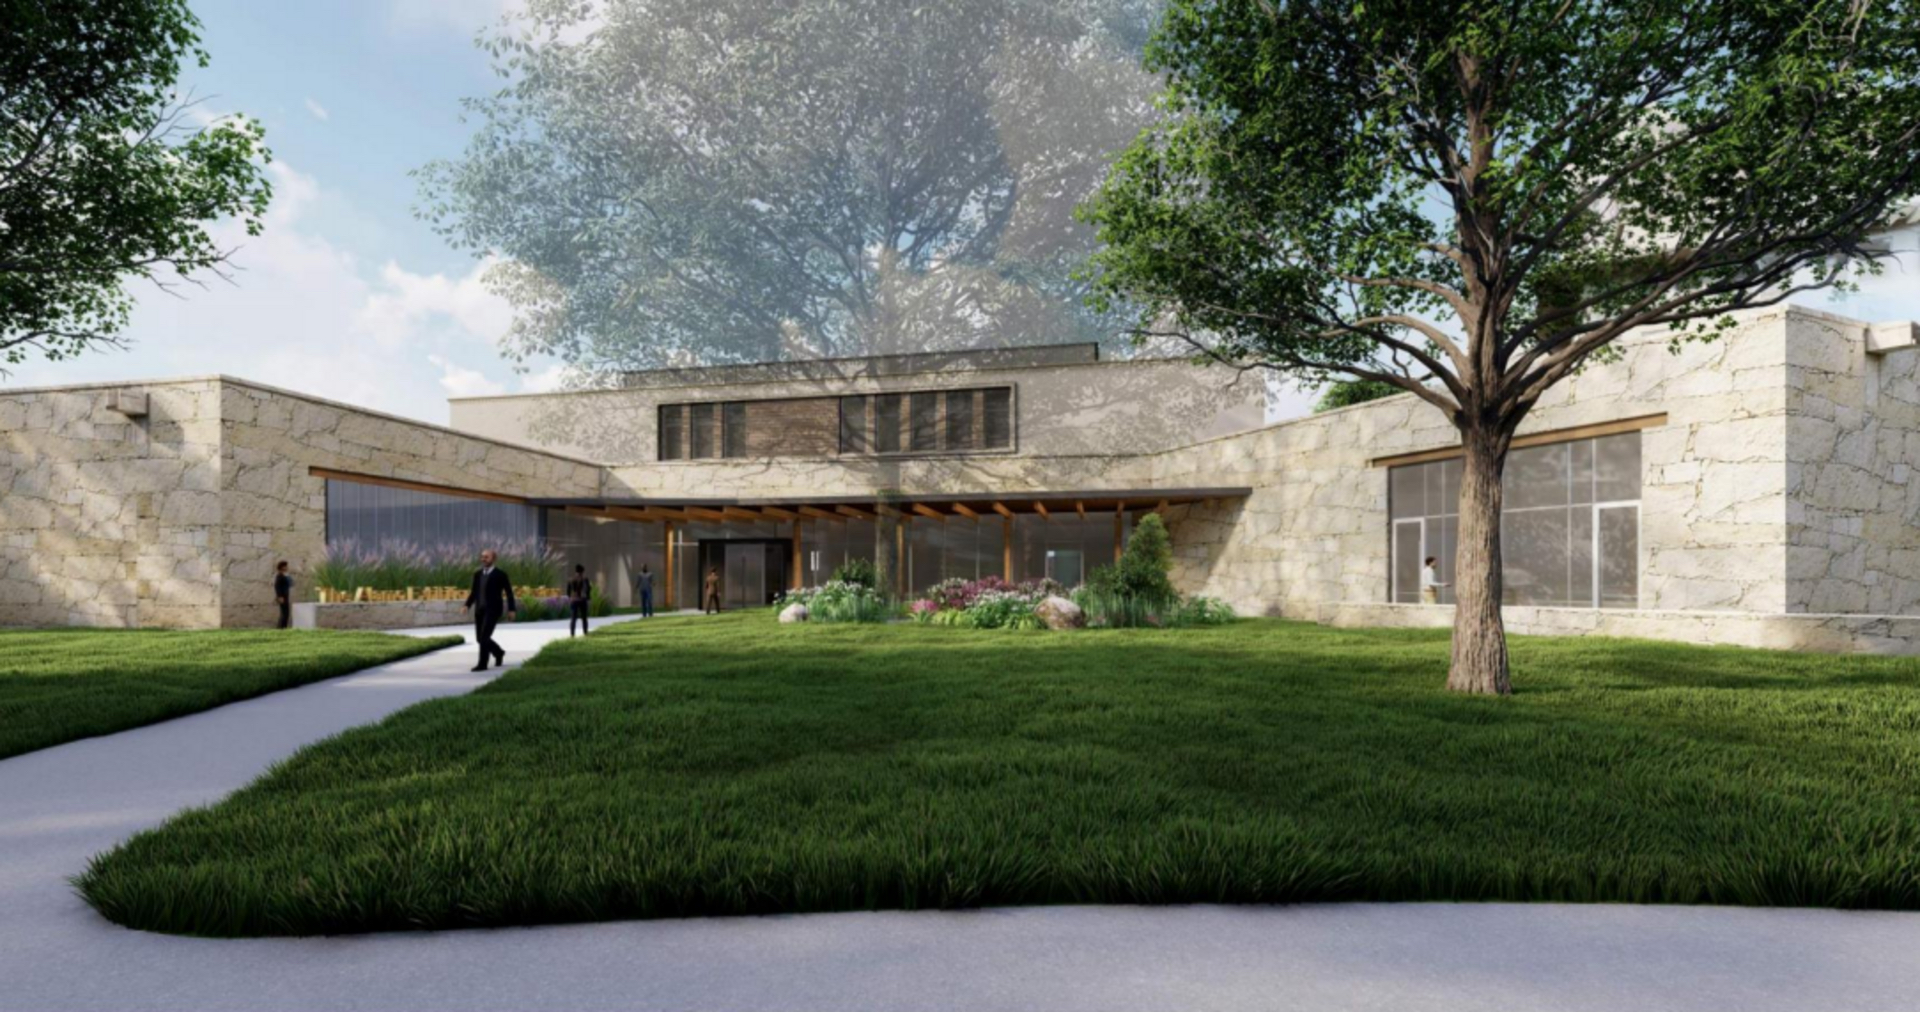 New collections building on Alamo grounds to house artifacts donated by Phil Collins